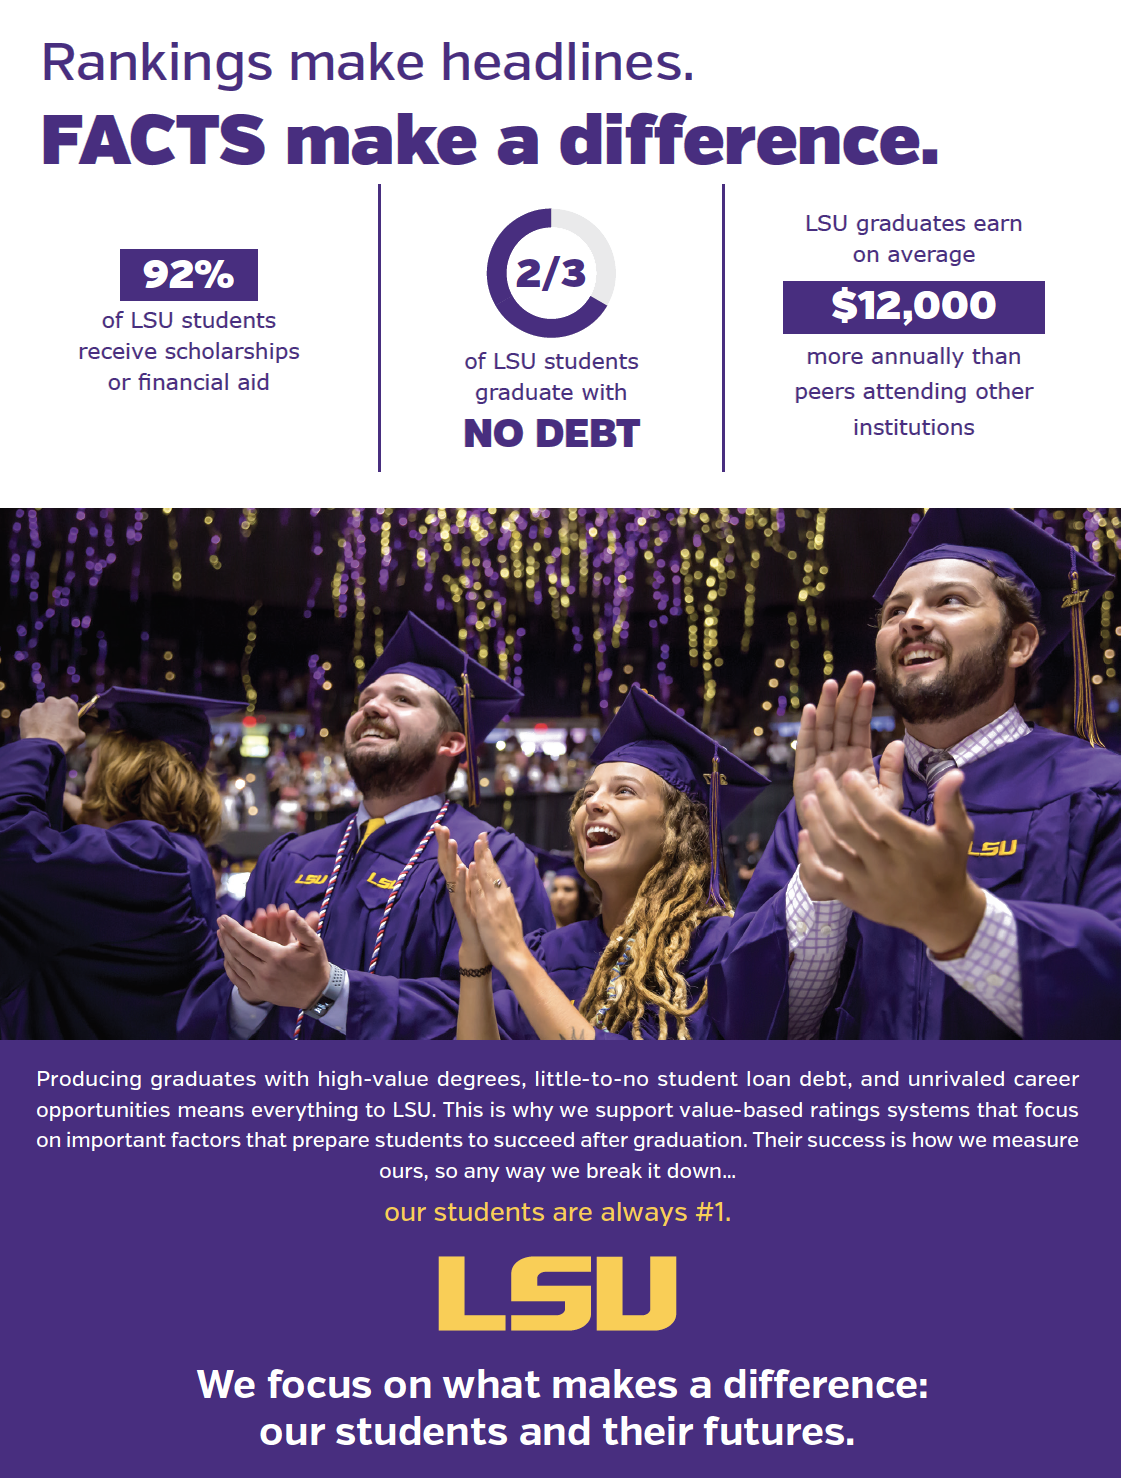 Statistics about LSU, compared to other schools